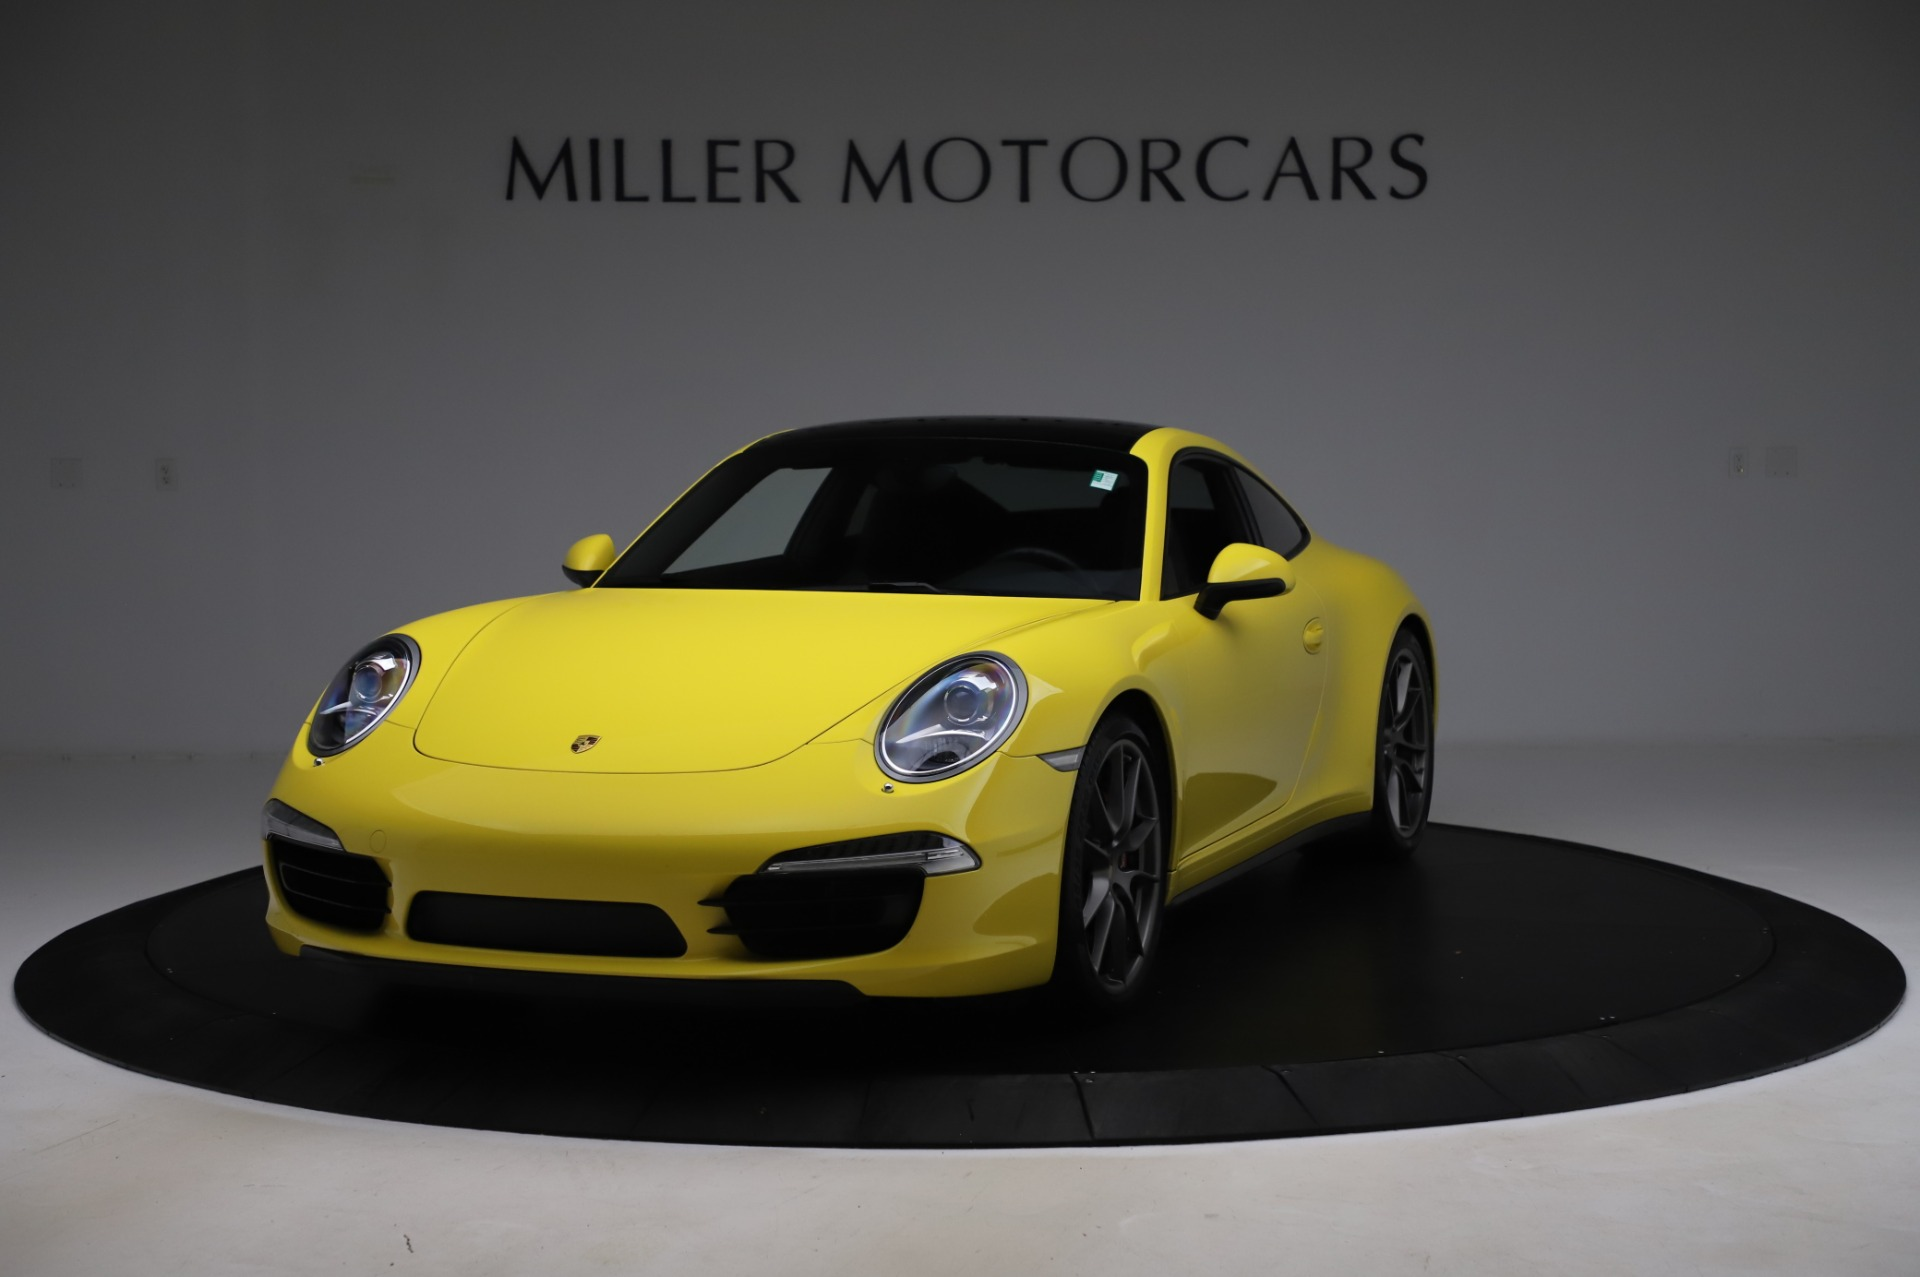 Used 2013 Porsche 911 Carrera 4S for sale $74,900 at Rolls-Royce Motor Cars Greenwich in Greenwich CT 06830 1